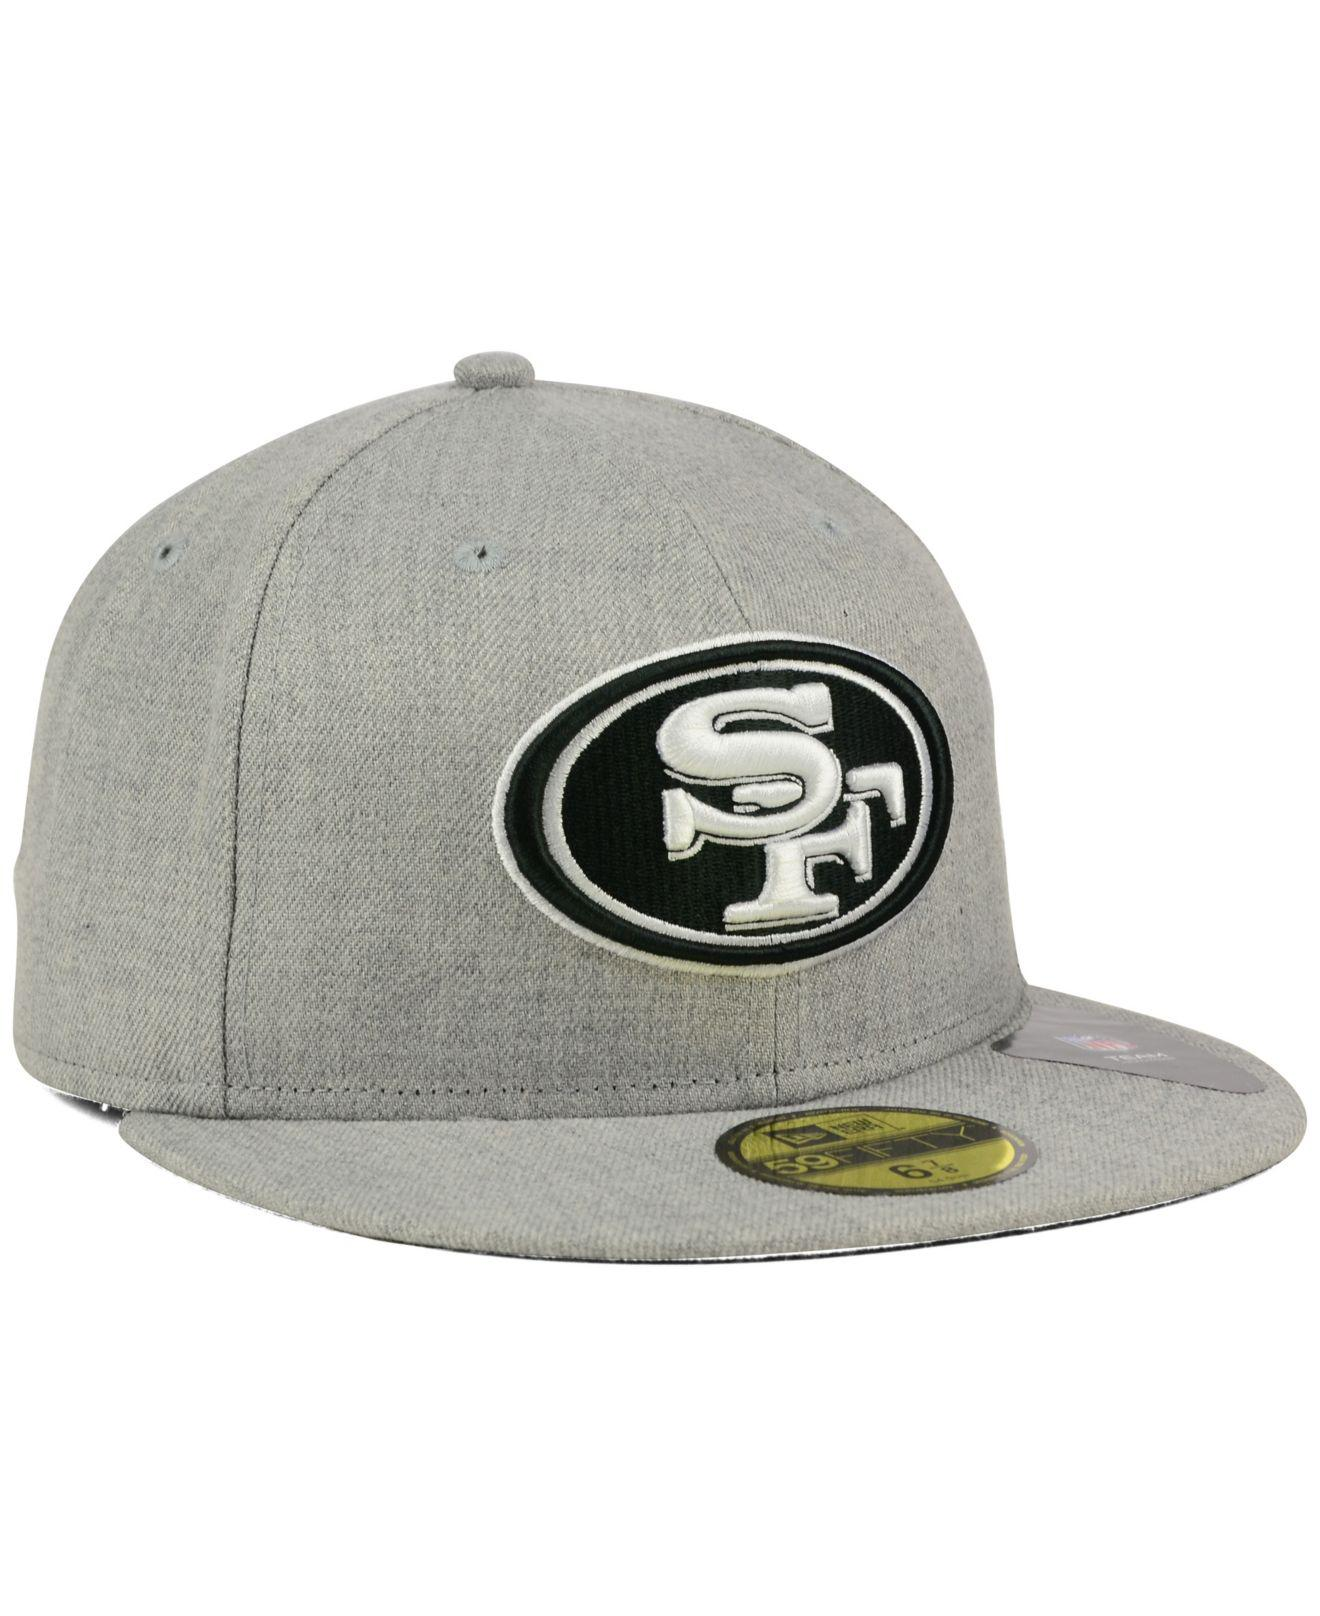 innovative design 3ad1e 7861d ... San Francisco 49ers Heather Black White 59fifty Cap for Men - Lyst.  View fullscreen